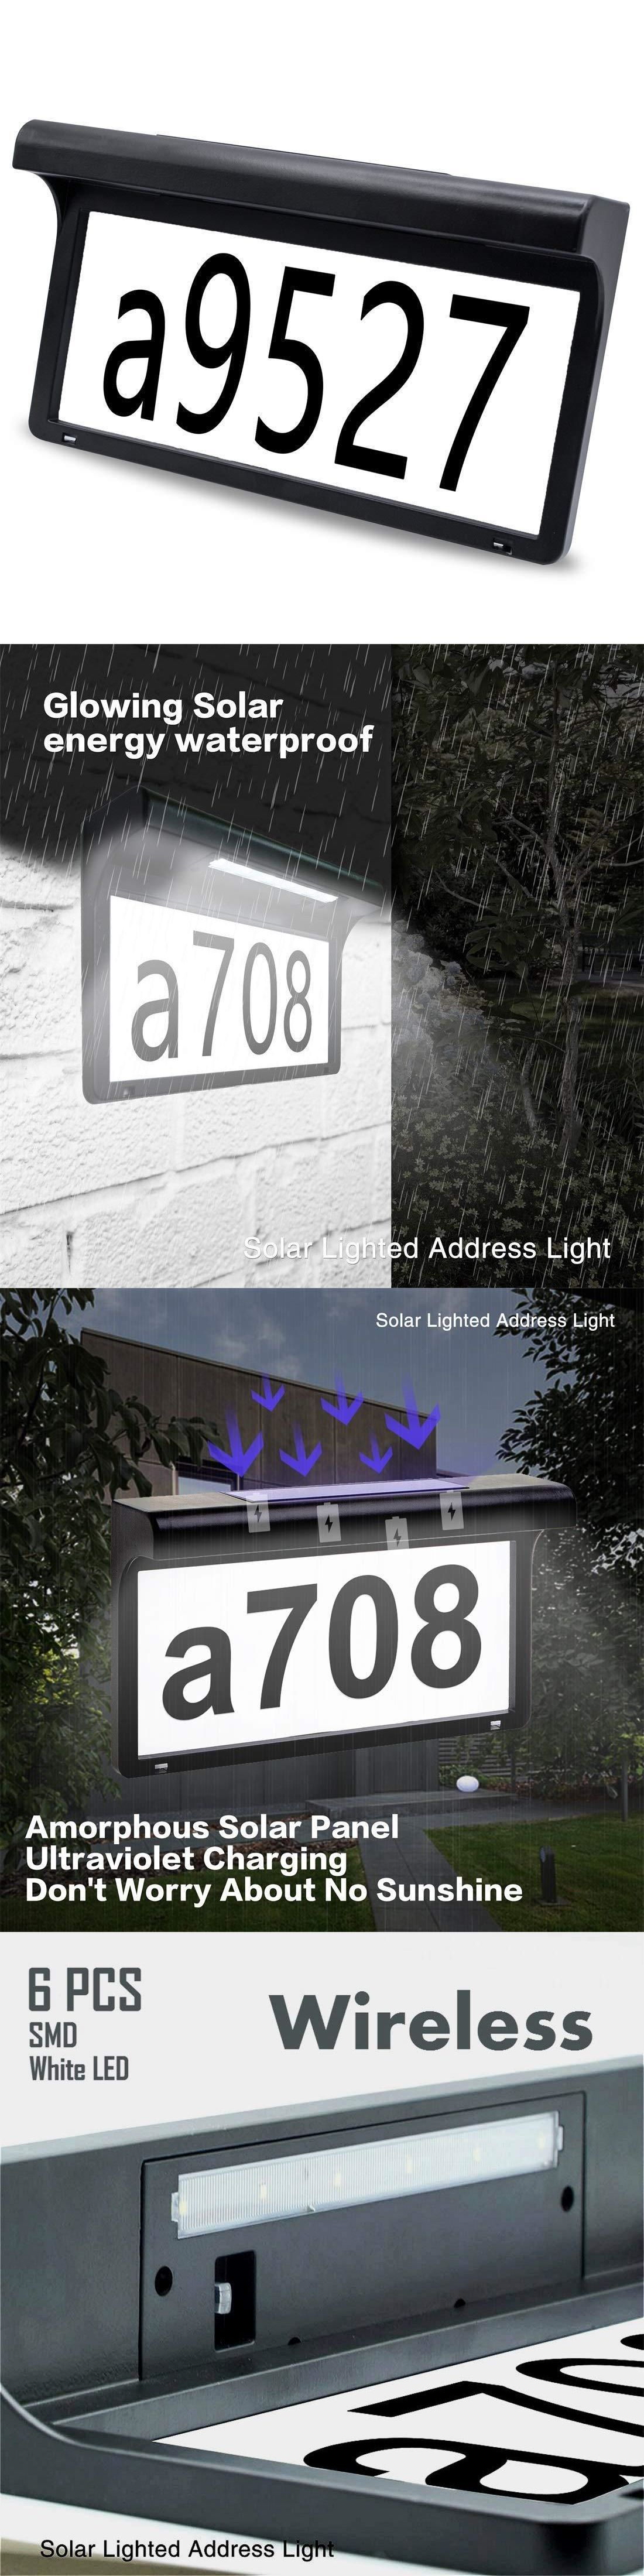 5635c76ee50 Garden Plaques and Signs 75592  Solar Lighted Address Sign Custom Mailbox House  Numbers Plaque Waterproof -  BUY IT NOW ONLY   31.67 on  eBay  garden ...